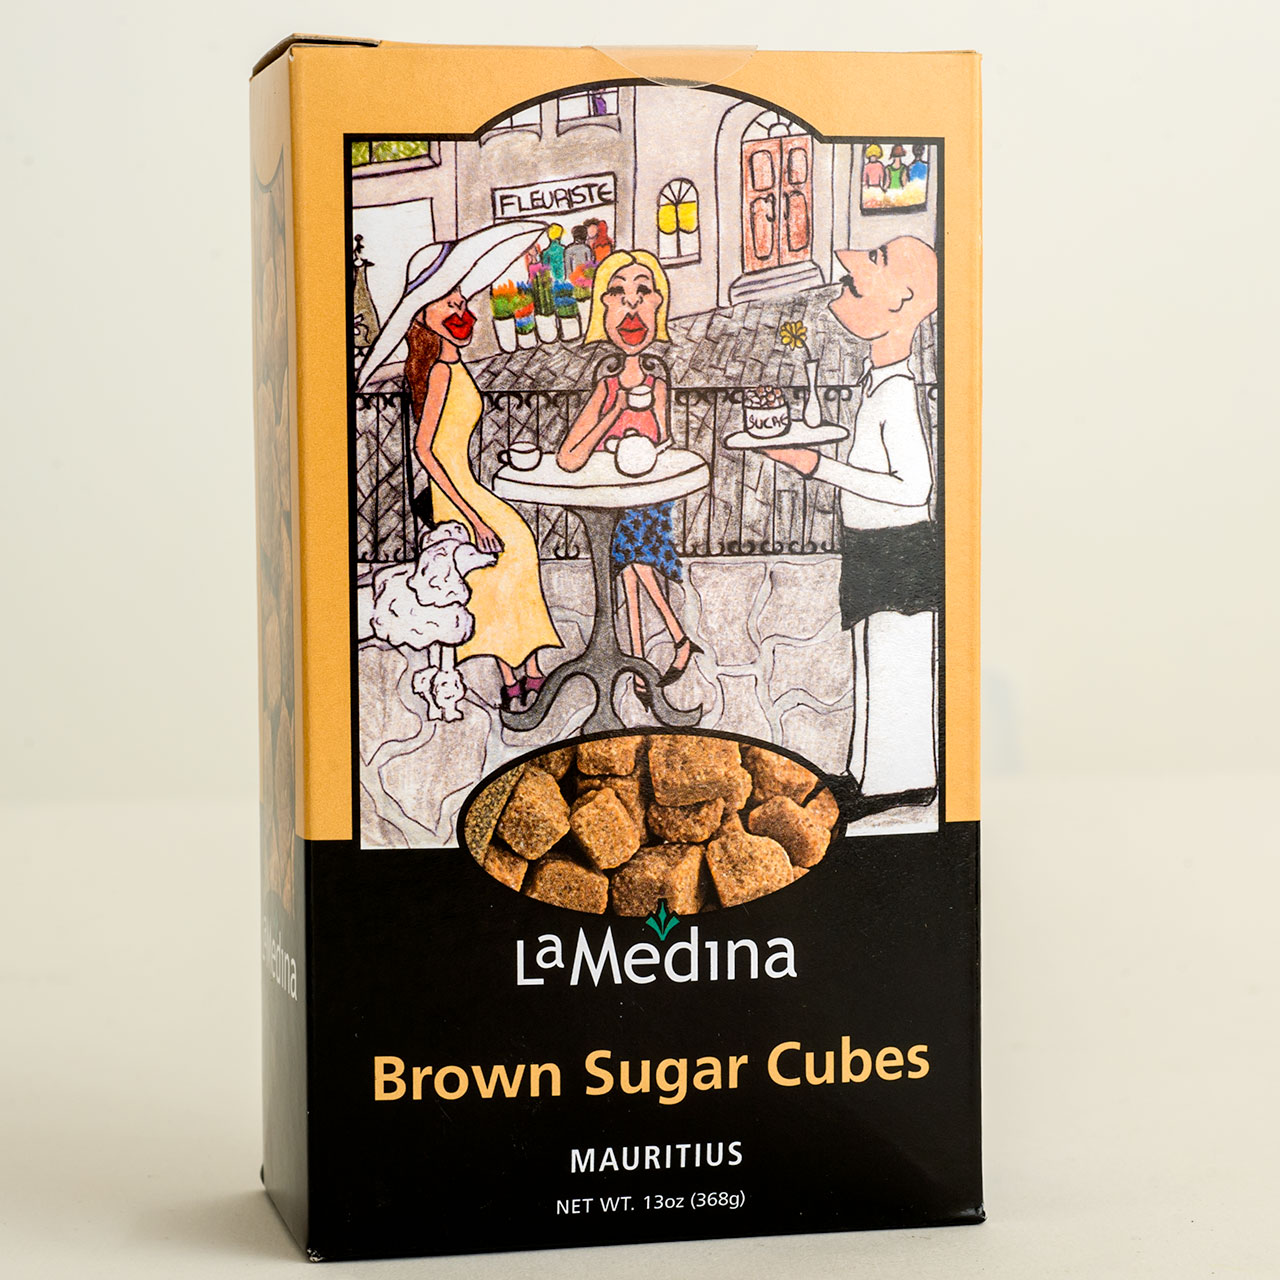 Brown Sugar Cubes from Mauritius